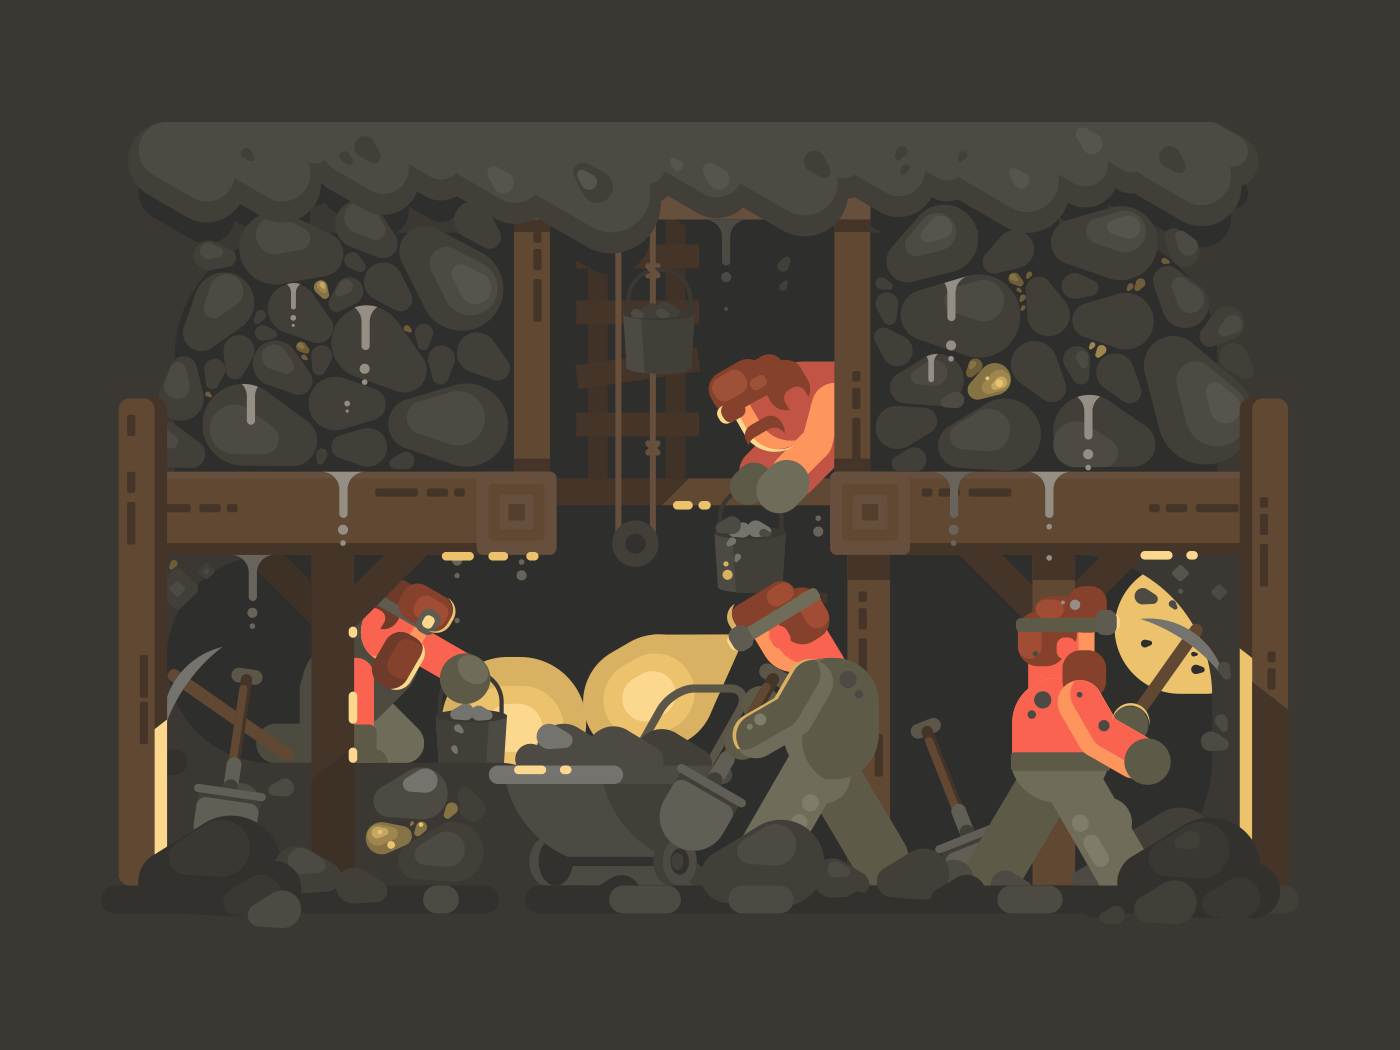 Mine for gold mining. Miners underground mined minerals. Vector illustration